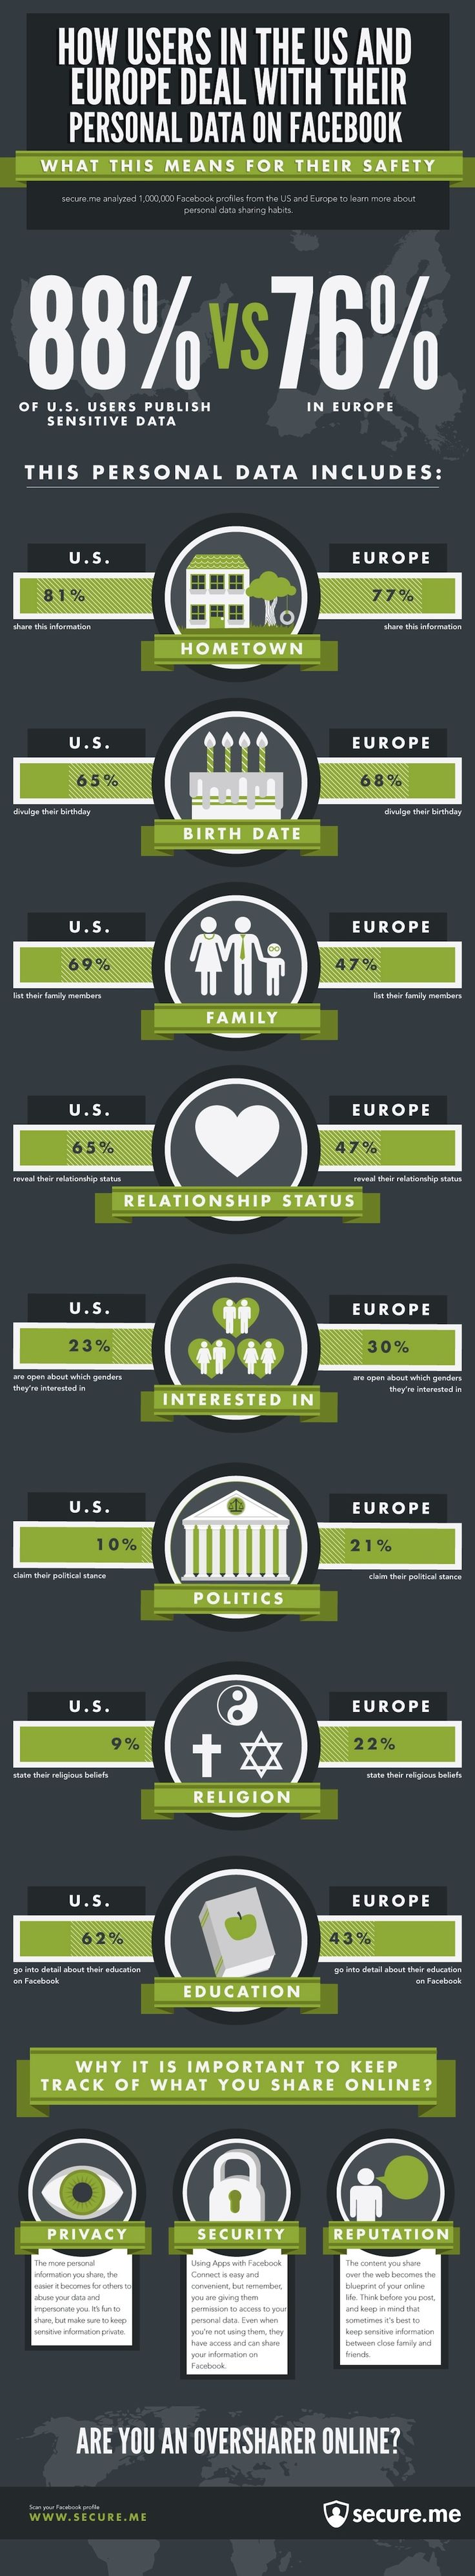 INFOGRAPHIC: Facebook Sharing